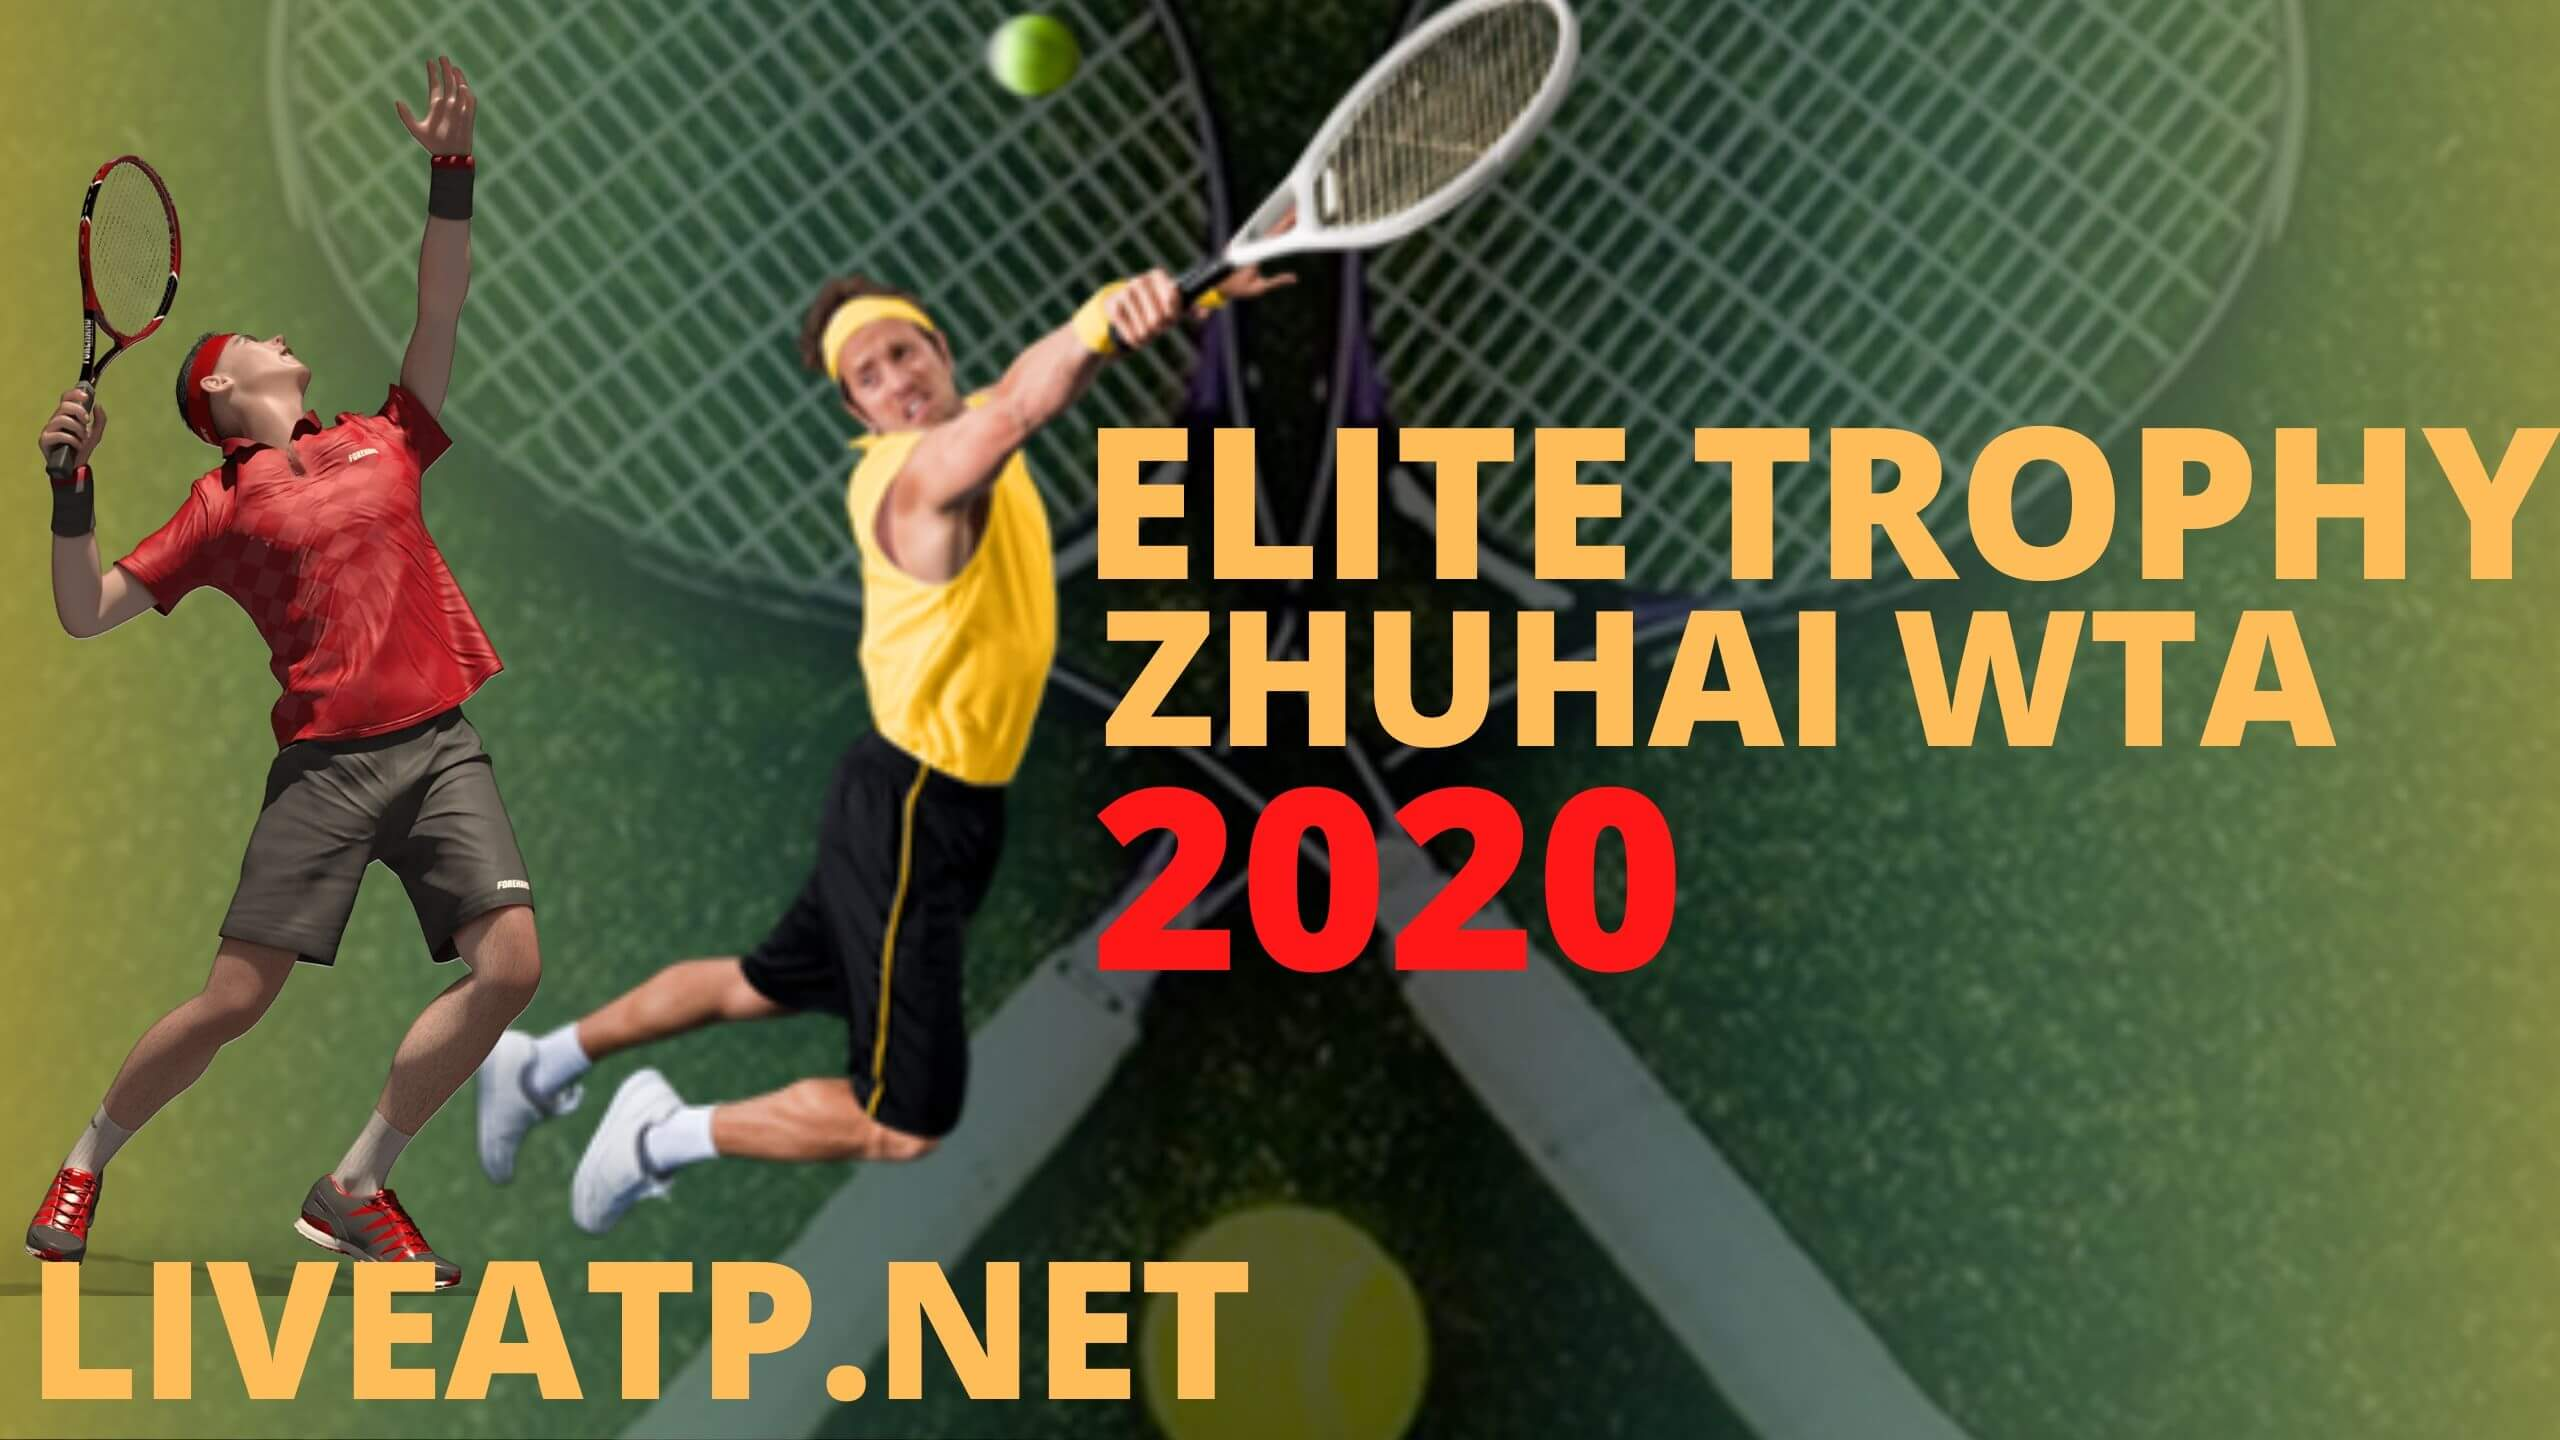 WTA Elite Trophy Zhuhai Live Stream 2020 | Semi Final